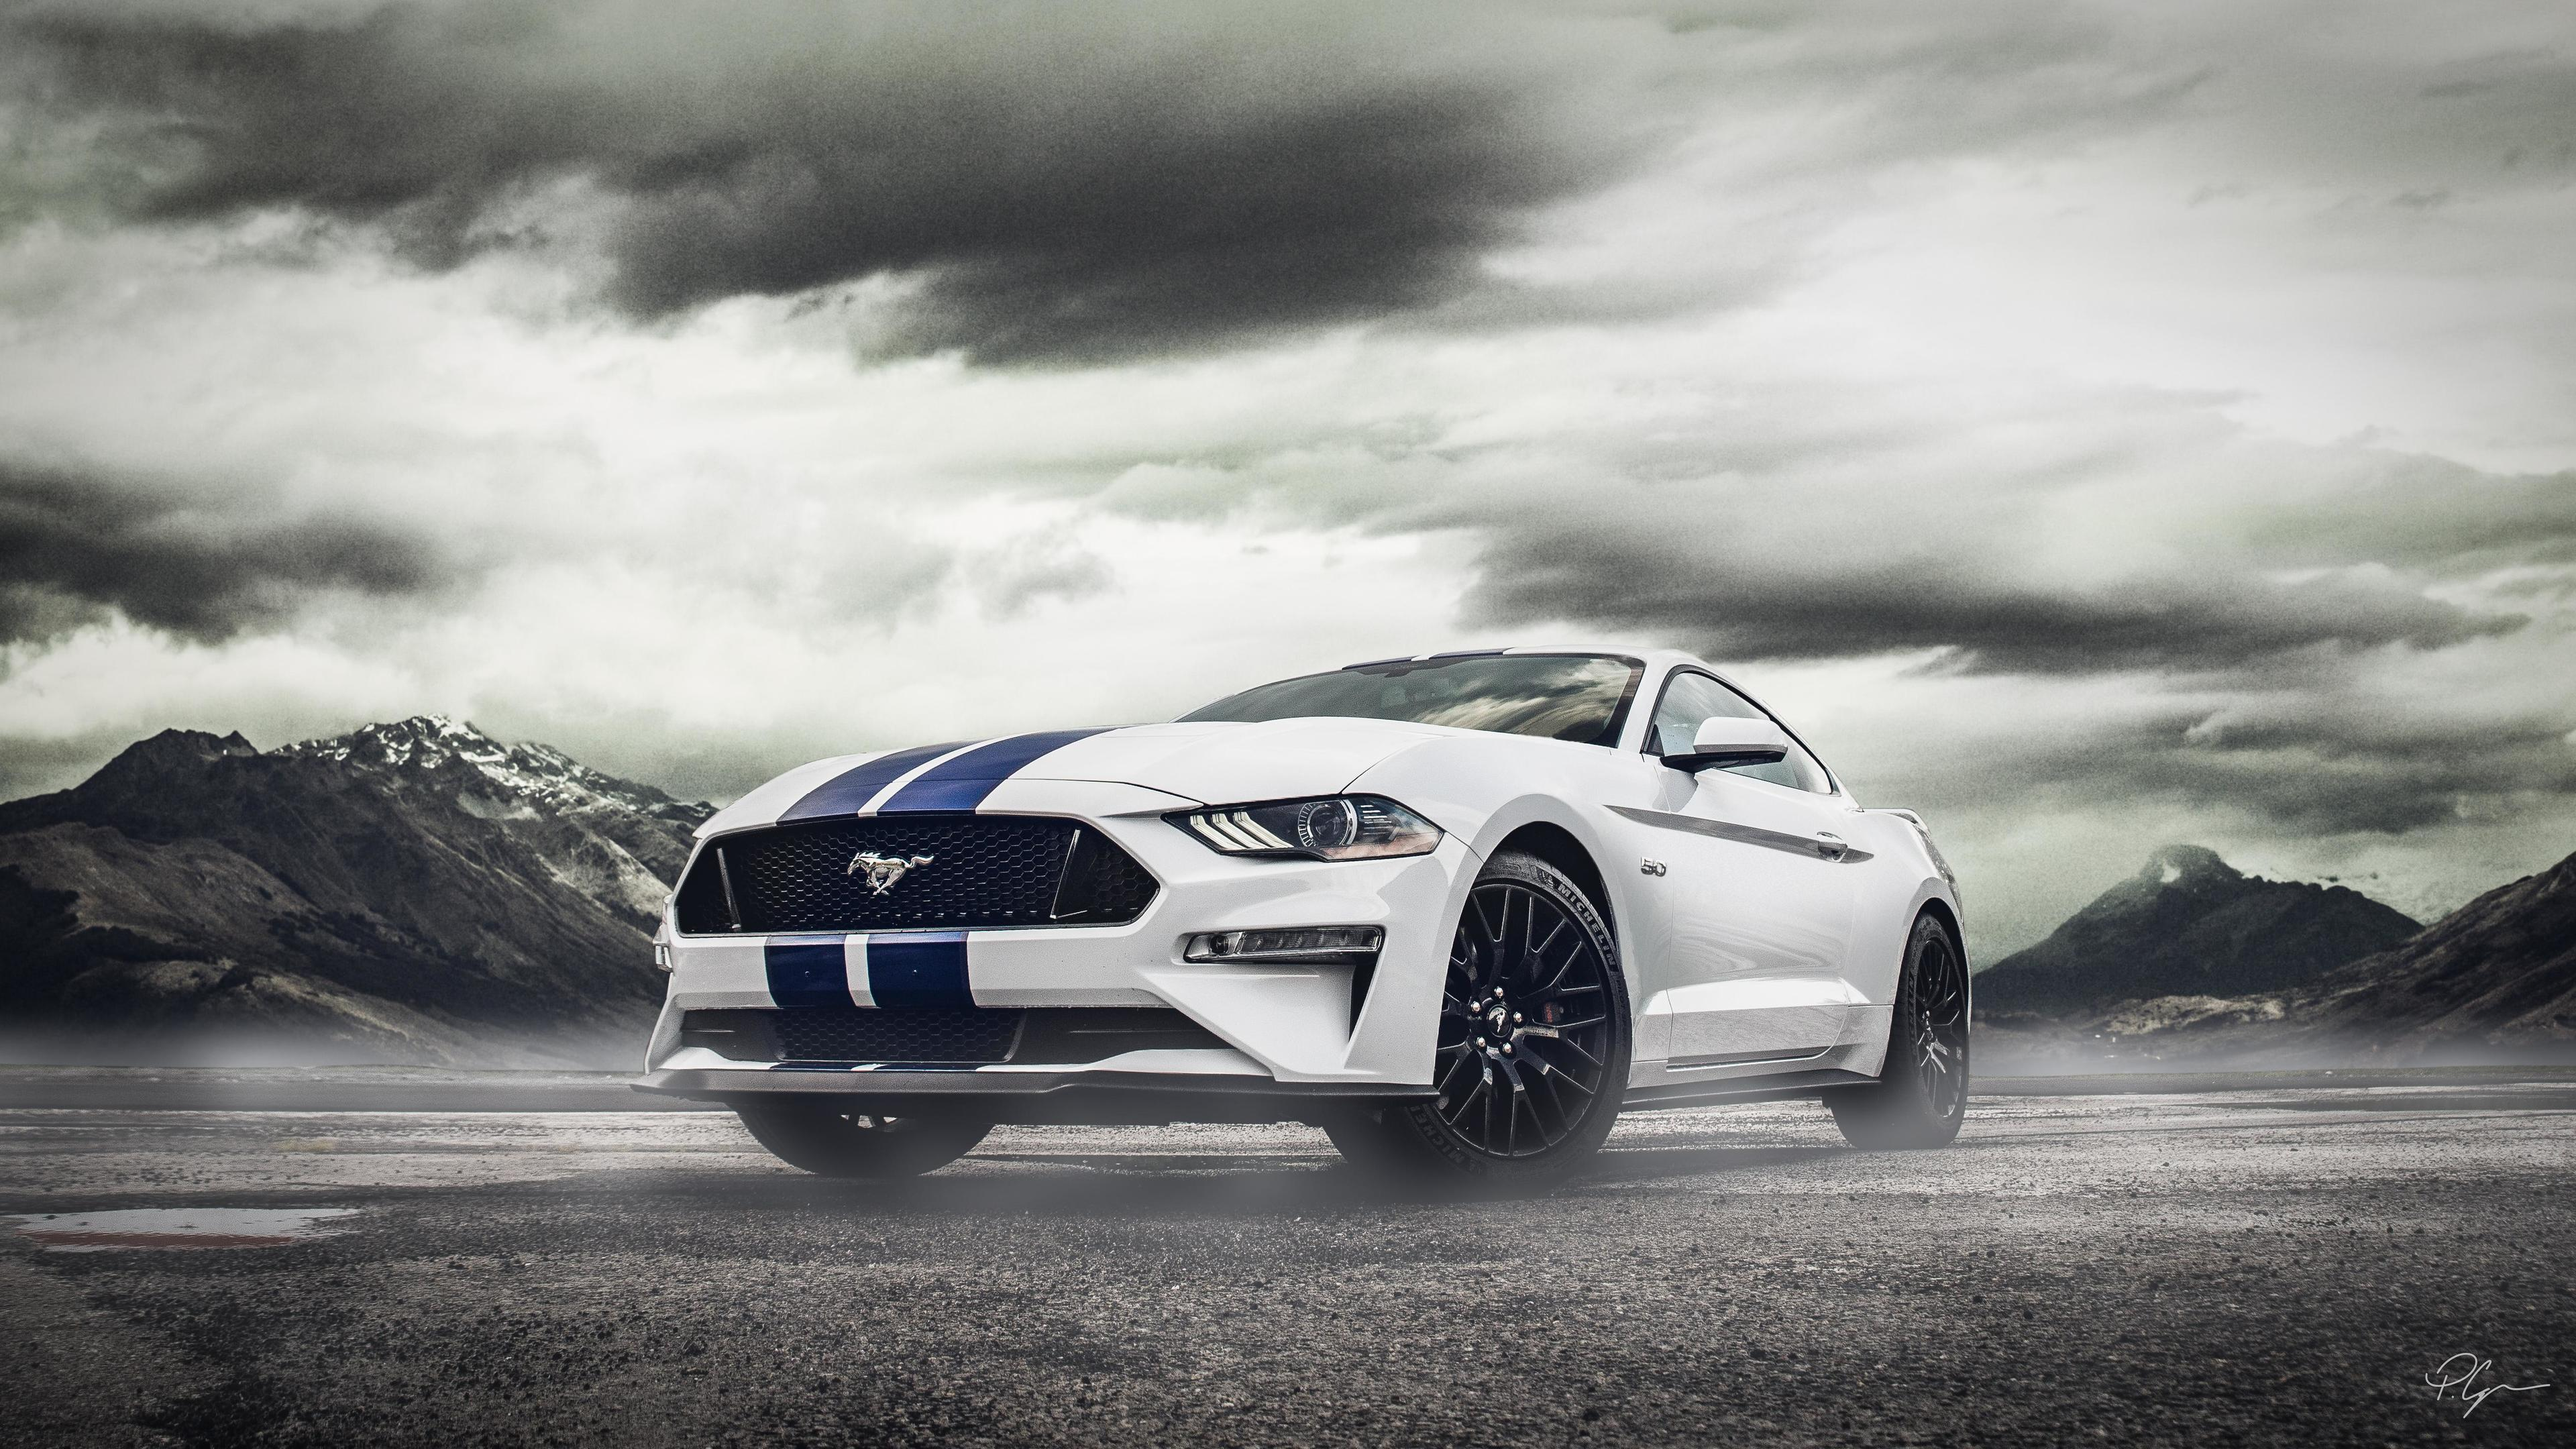 ford mustang new 1565054794 - Ford Mustang New - hd-wallpapers, ford mustang wallpapers, cars wallpapers, 5k wallpapers, 4k-wallpapers